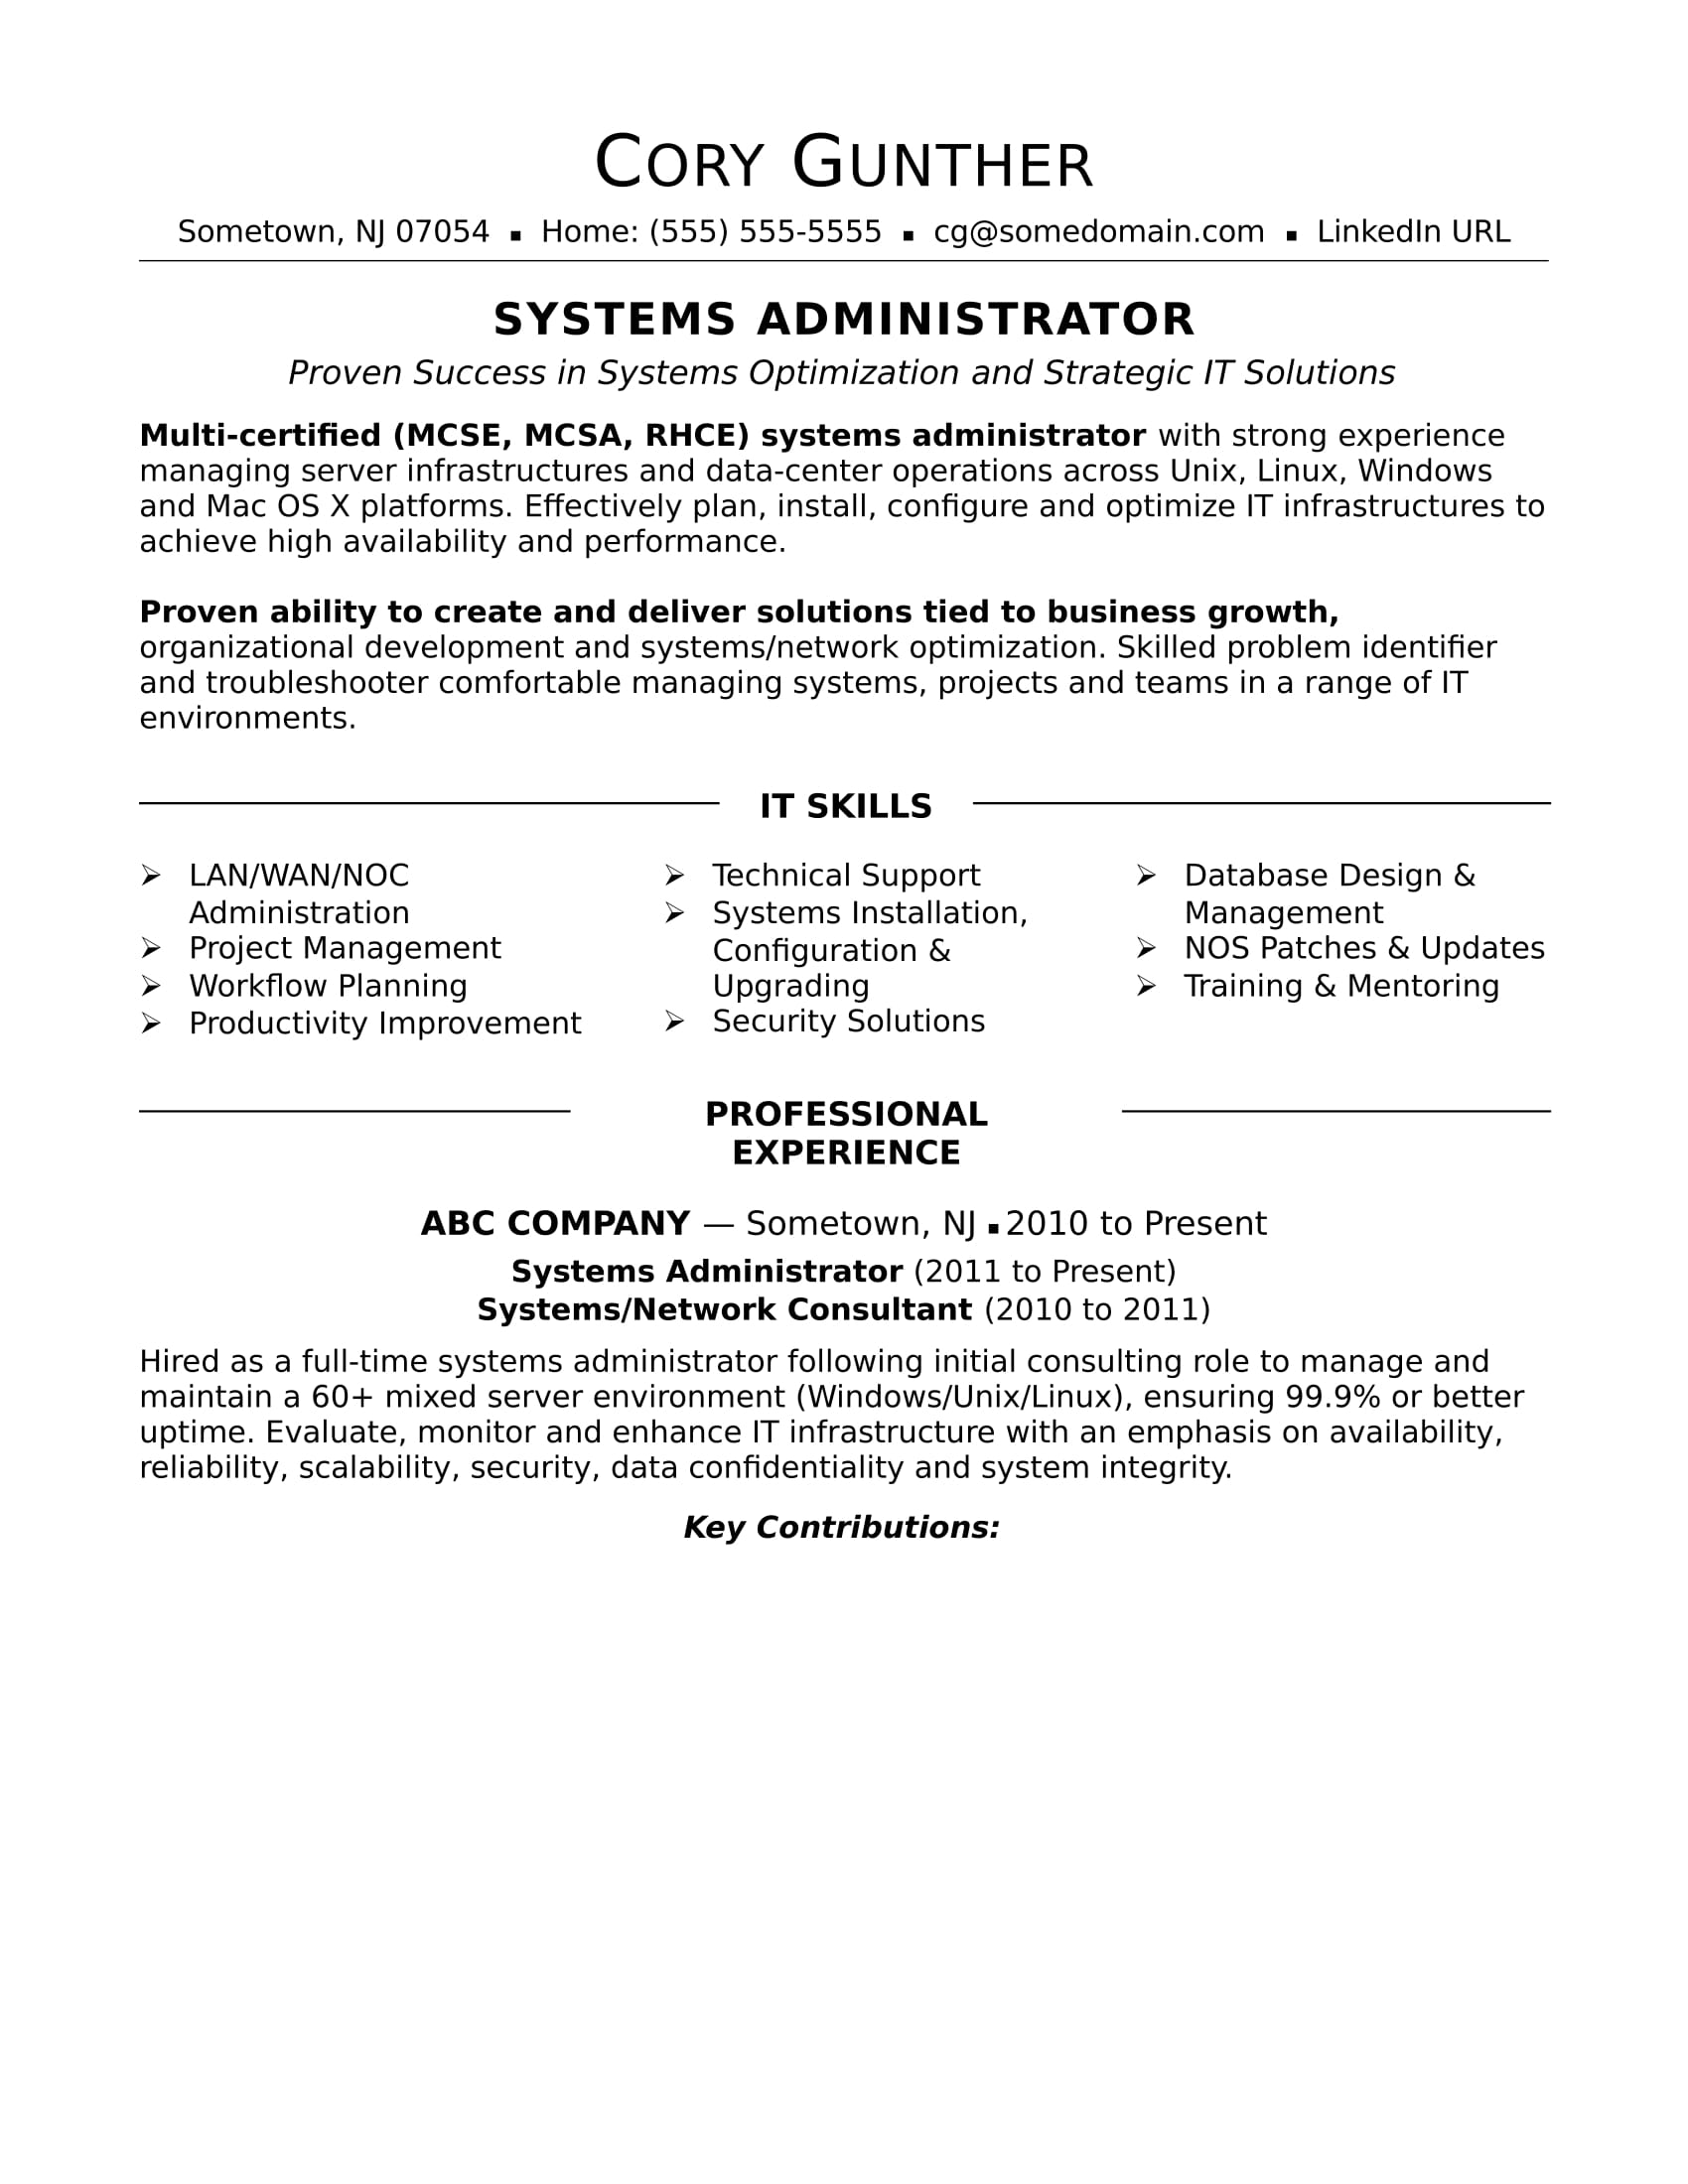 sample resume for an experienced systems administrator monster system admin format best Resume System Admin Resume Format